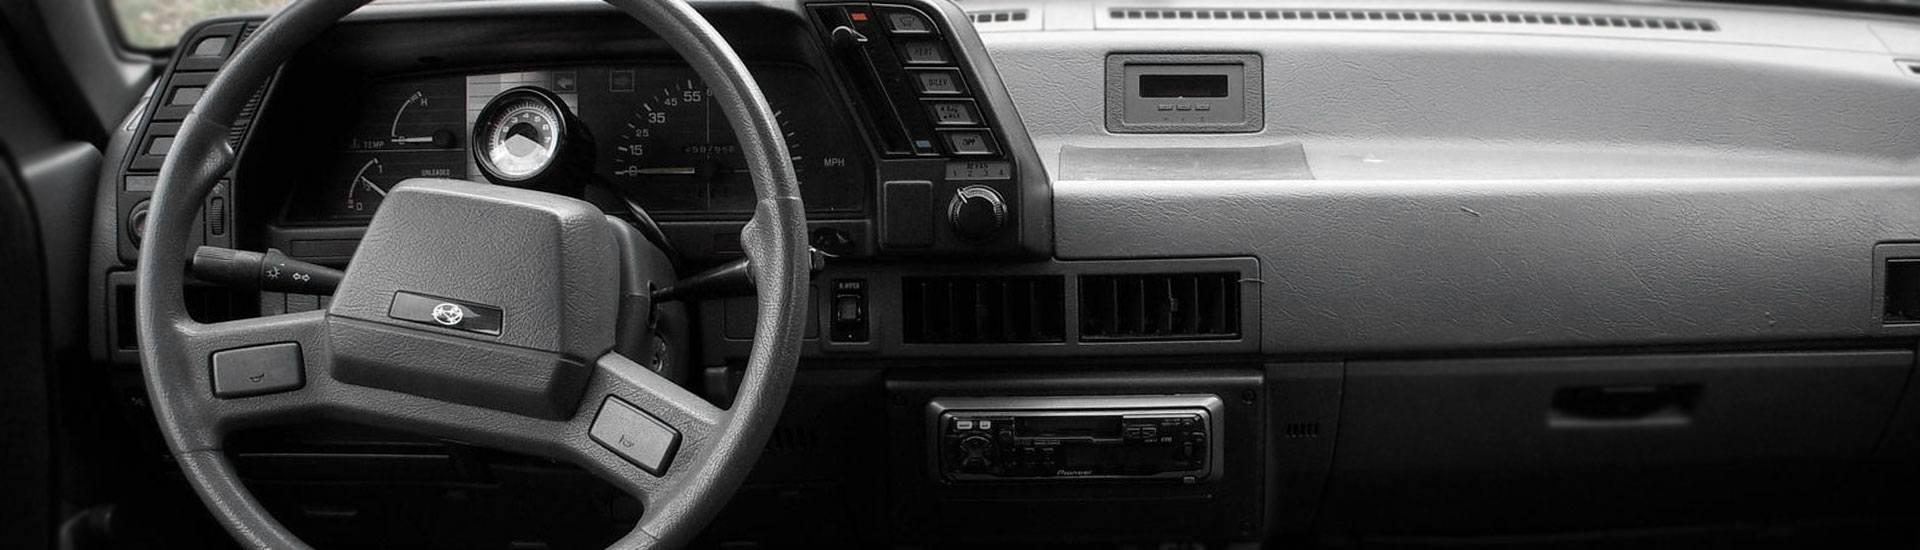 Subaru Loyale Dash Kits Custom Subaru Loyale Dash Kit